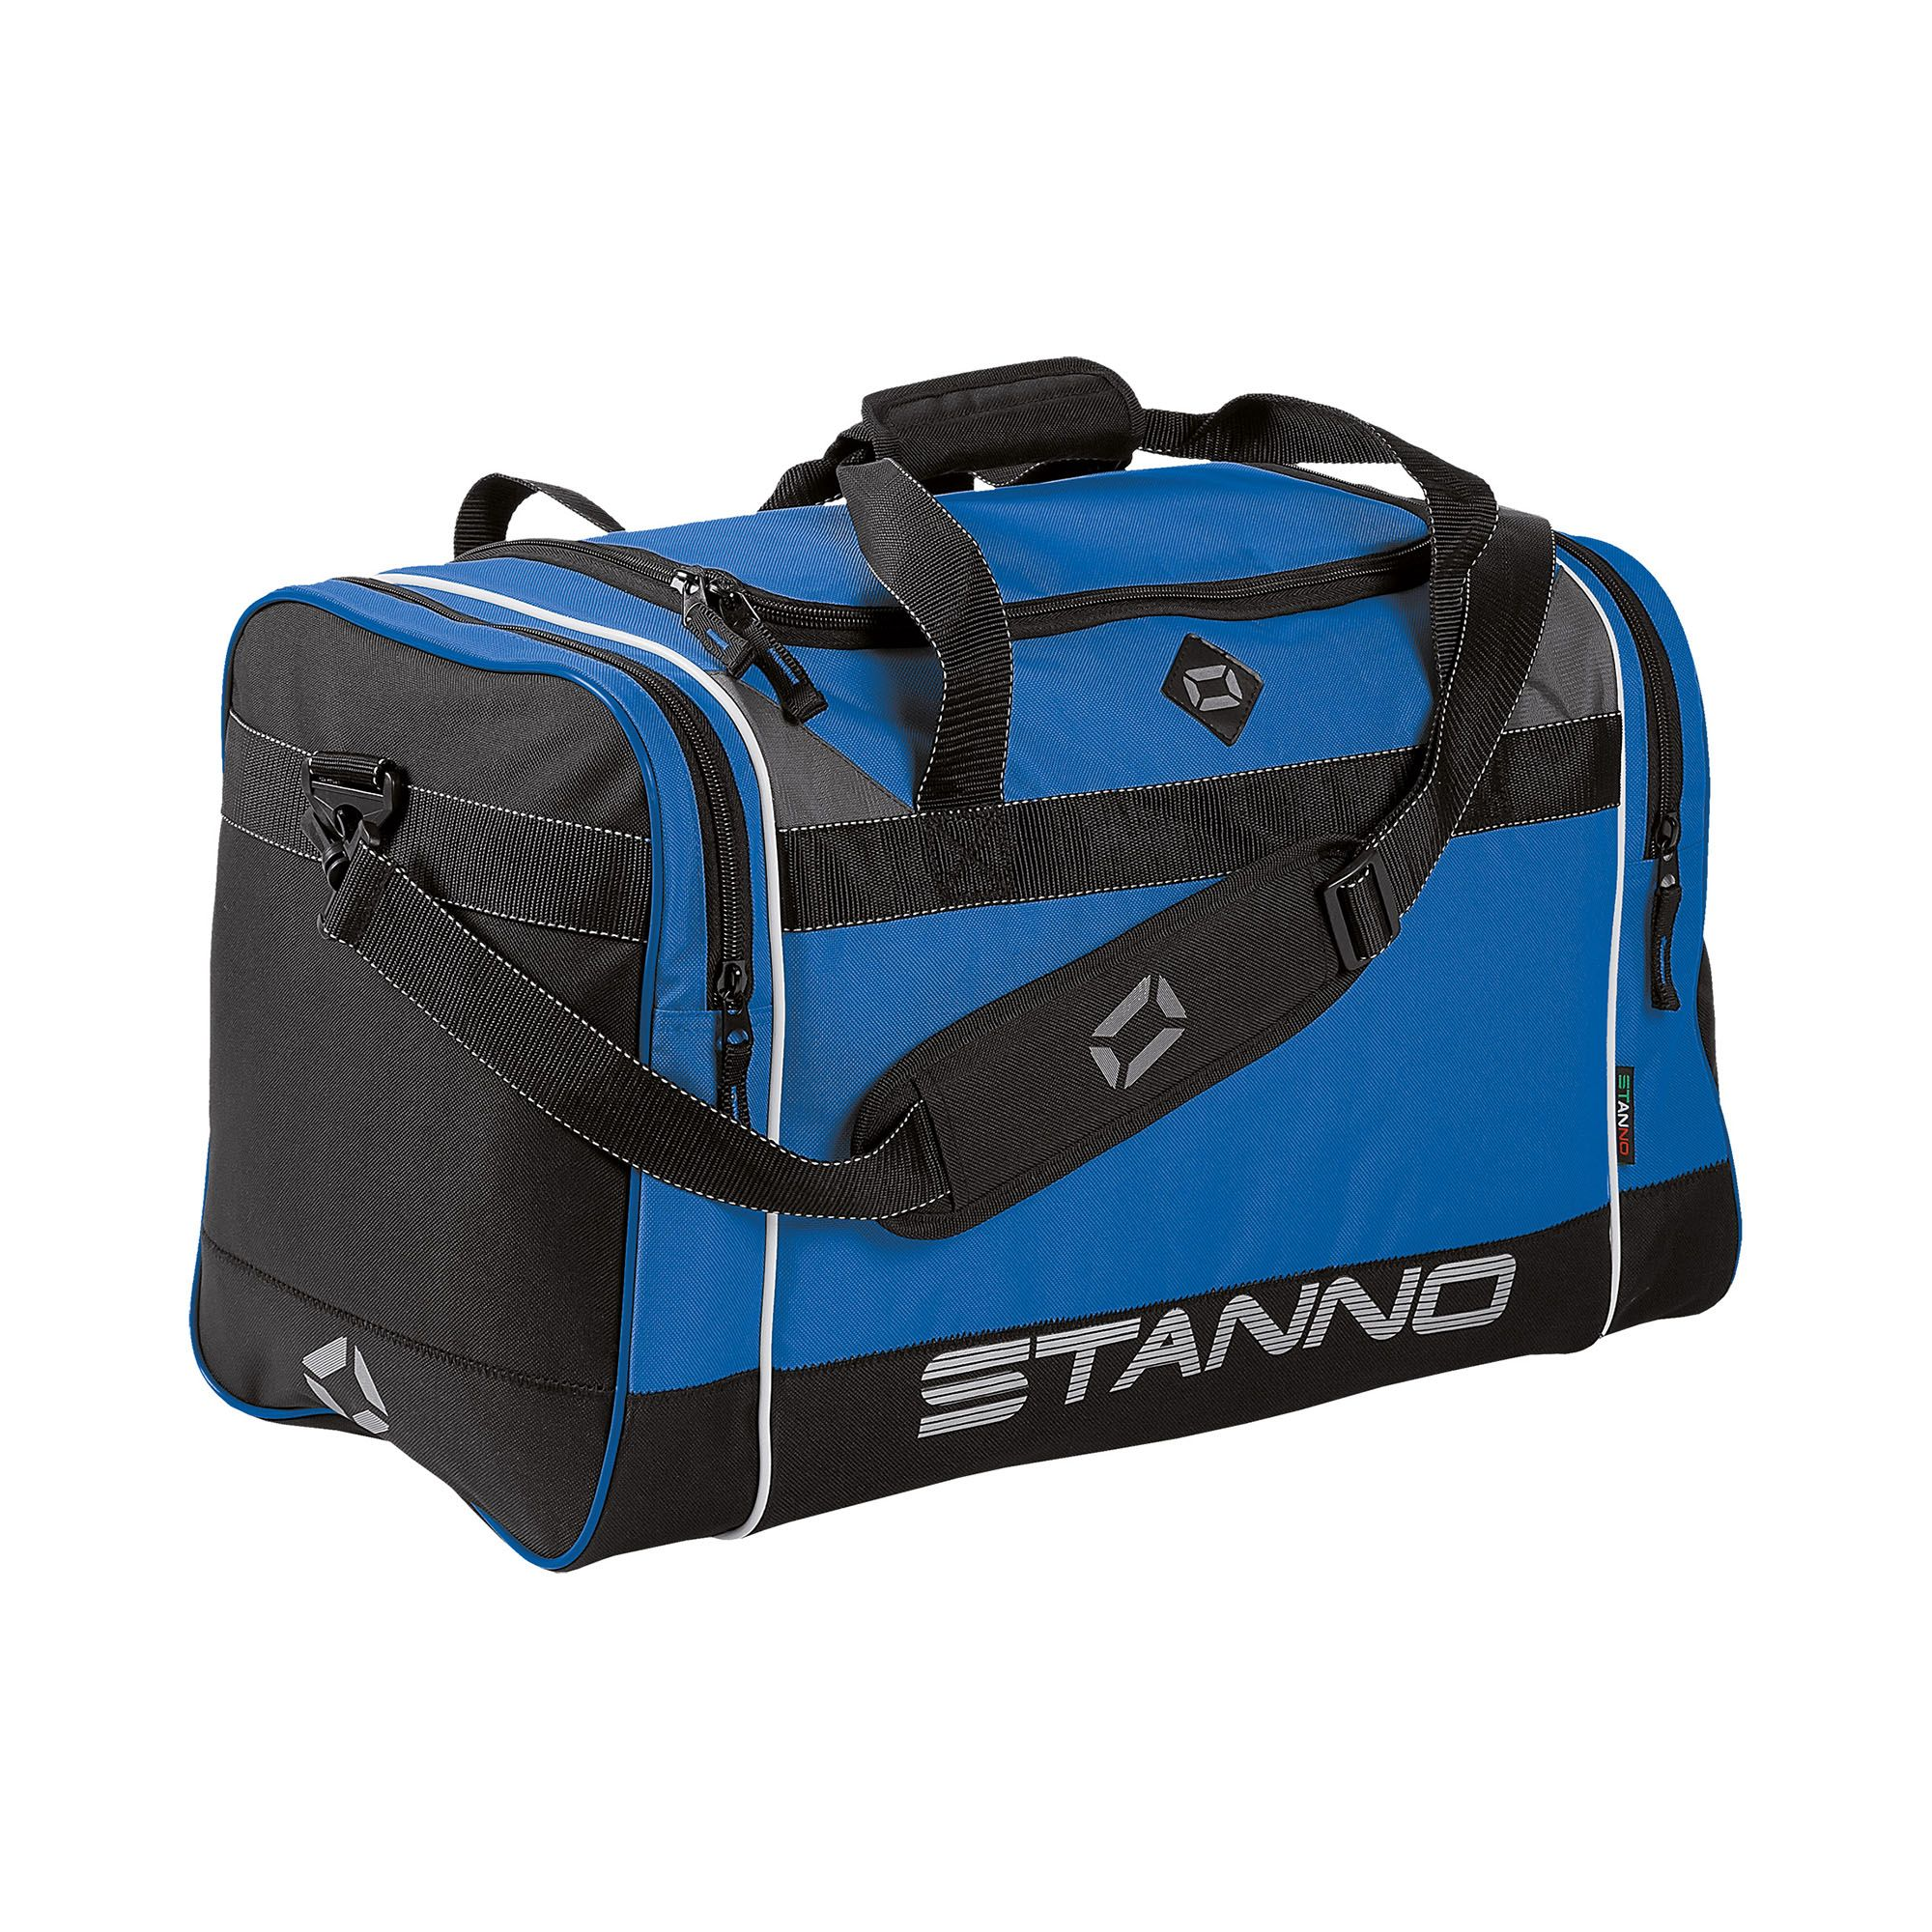 Stanno Sevilla Excellence Sports Bag Blue d17d2343093f9